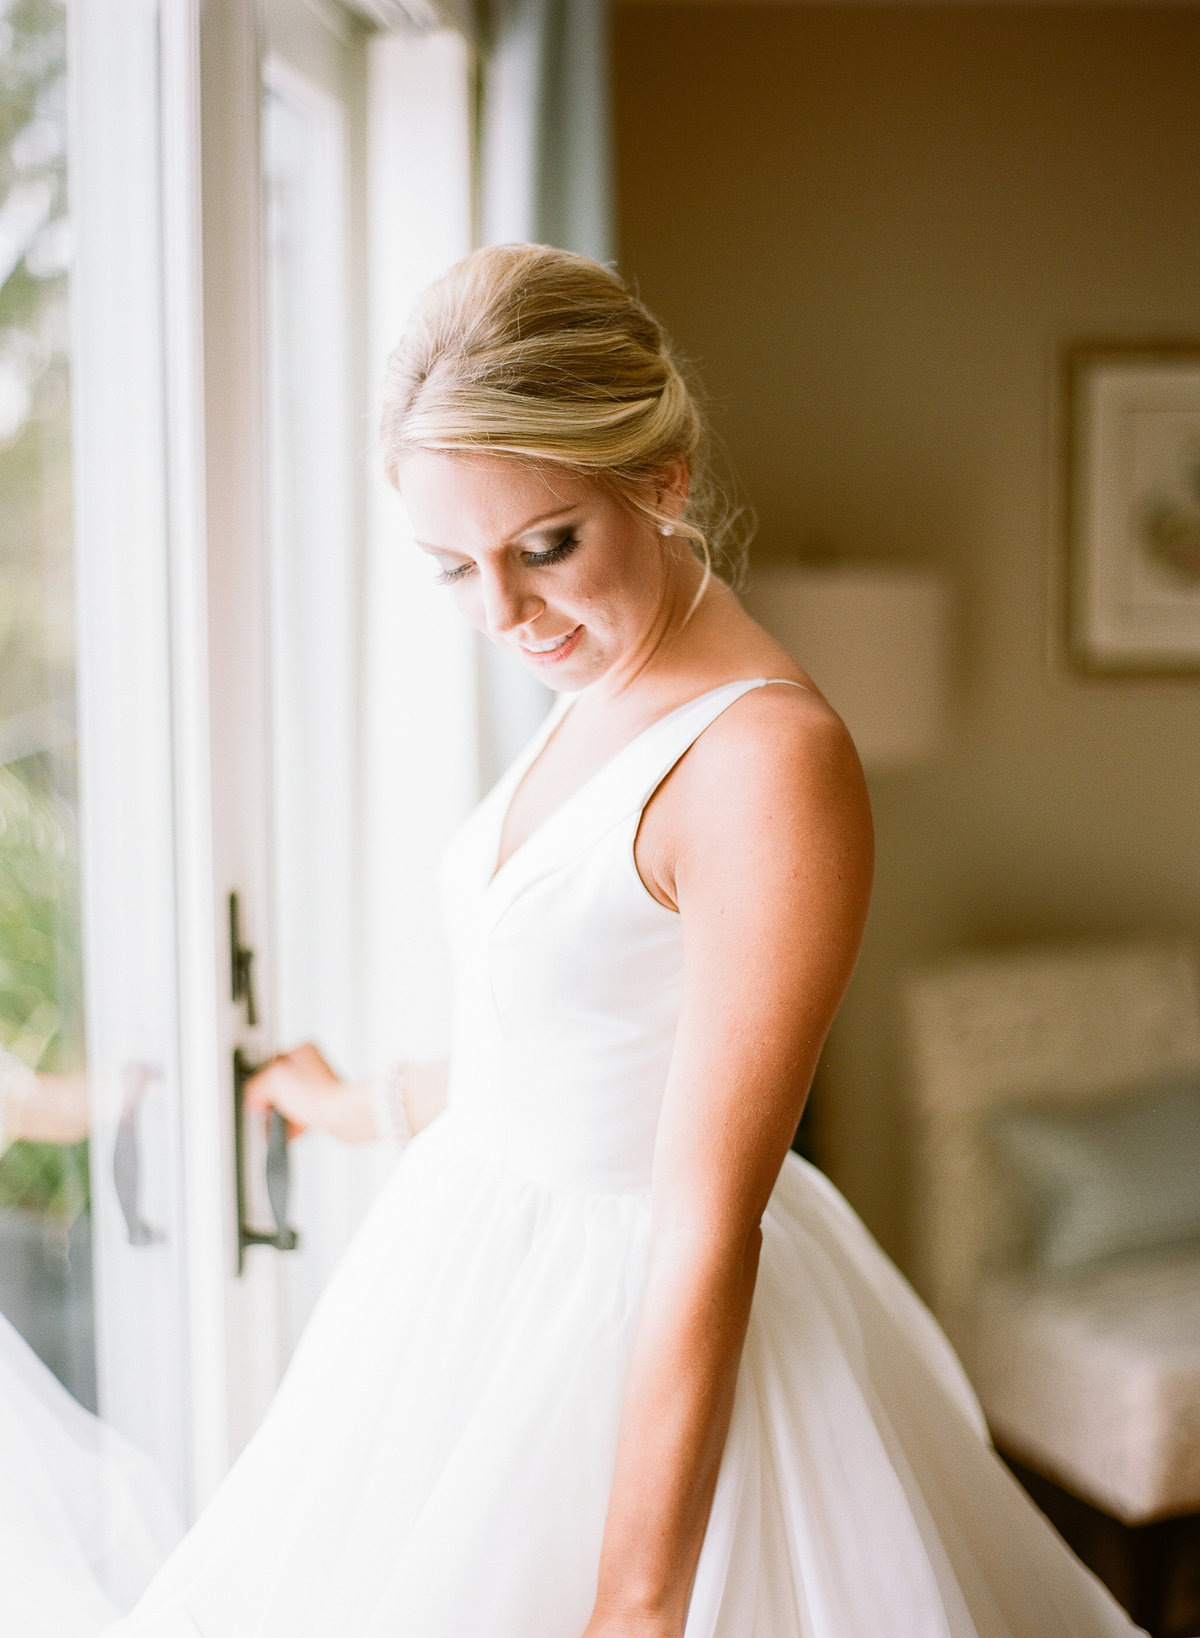 Alexis in Modern Trousseau Charleston Wedding Ball Gown